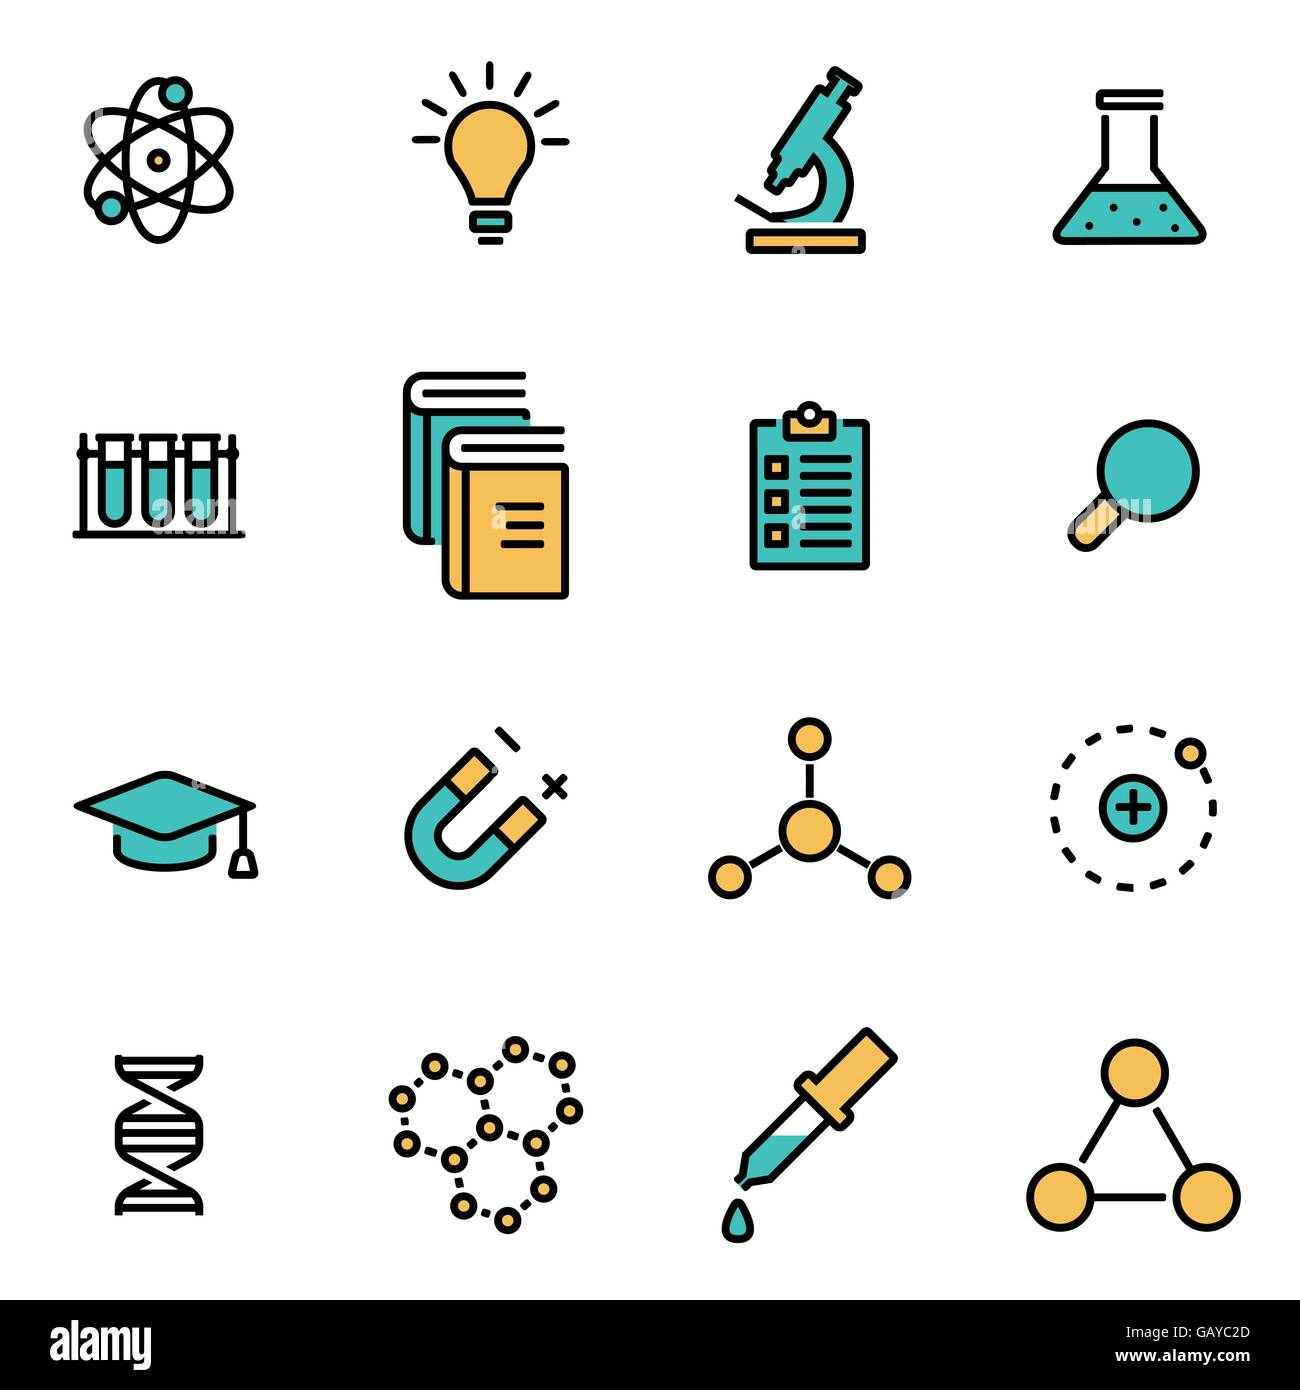 Science Set Stock Photos & Science Set Stock Images - Alamy